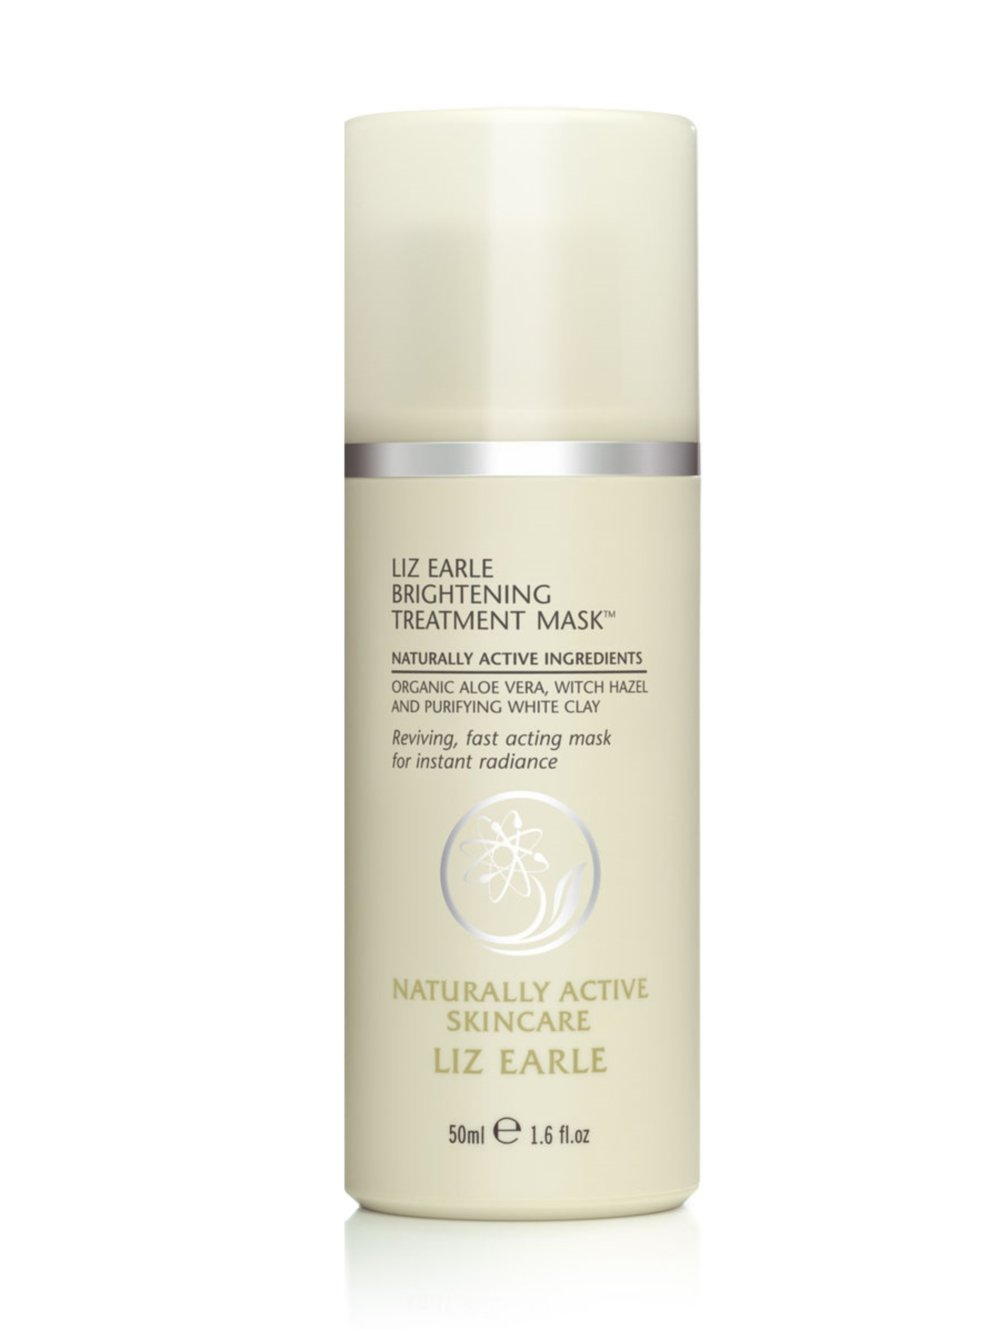 Liz Earle Brightening Treatment Mask 50ml Pump